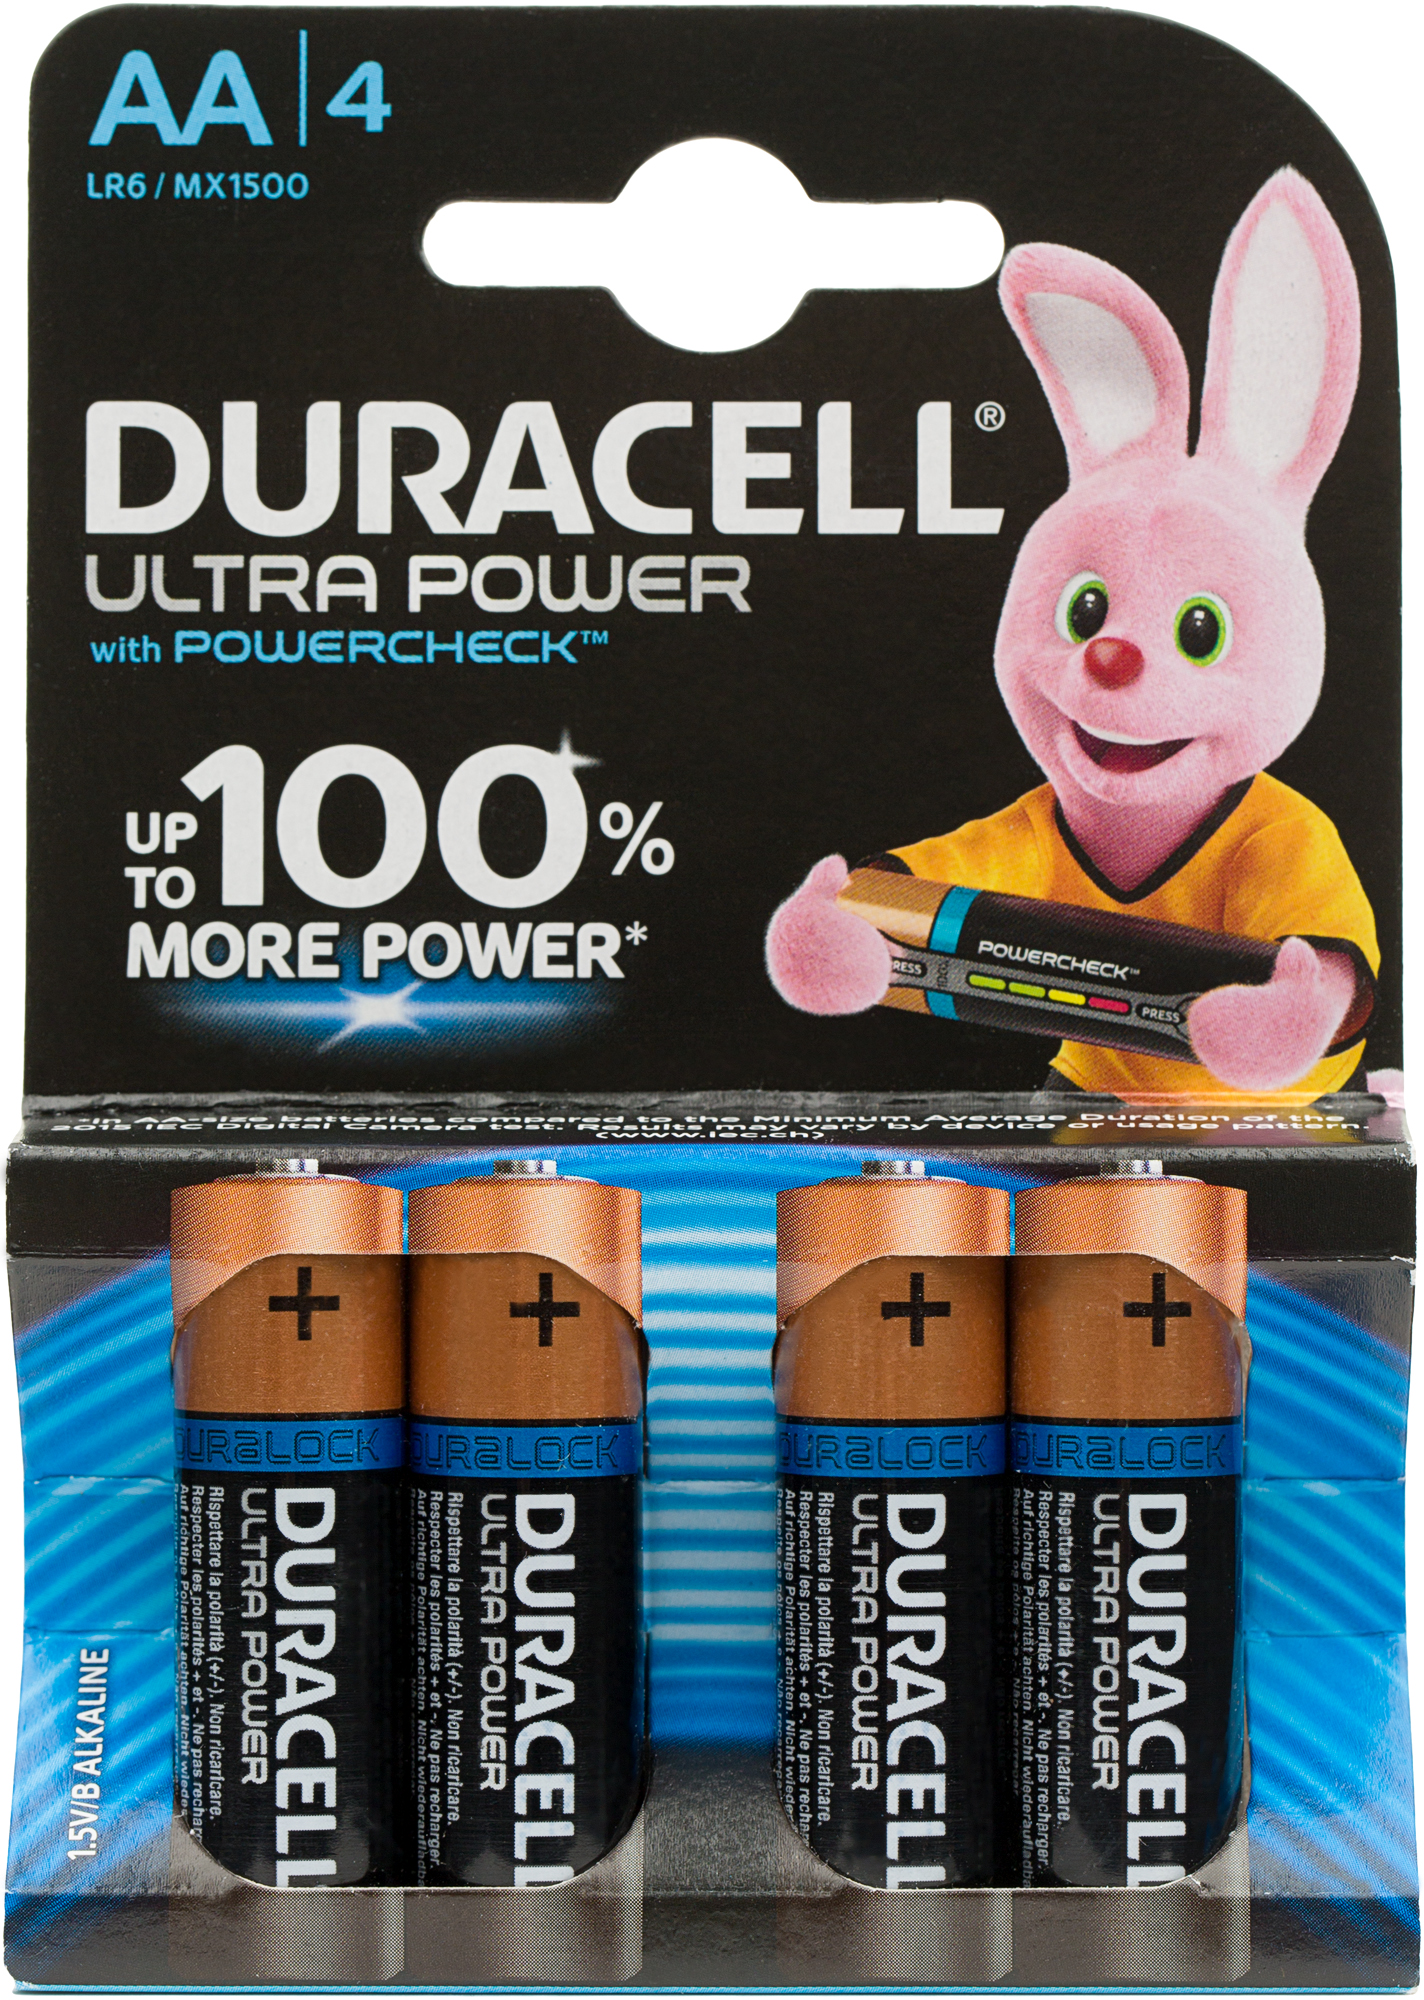 Duracell Батарейки щелочные Duracell Ultra Power АА/LR6, 4 шт. цена и фото